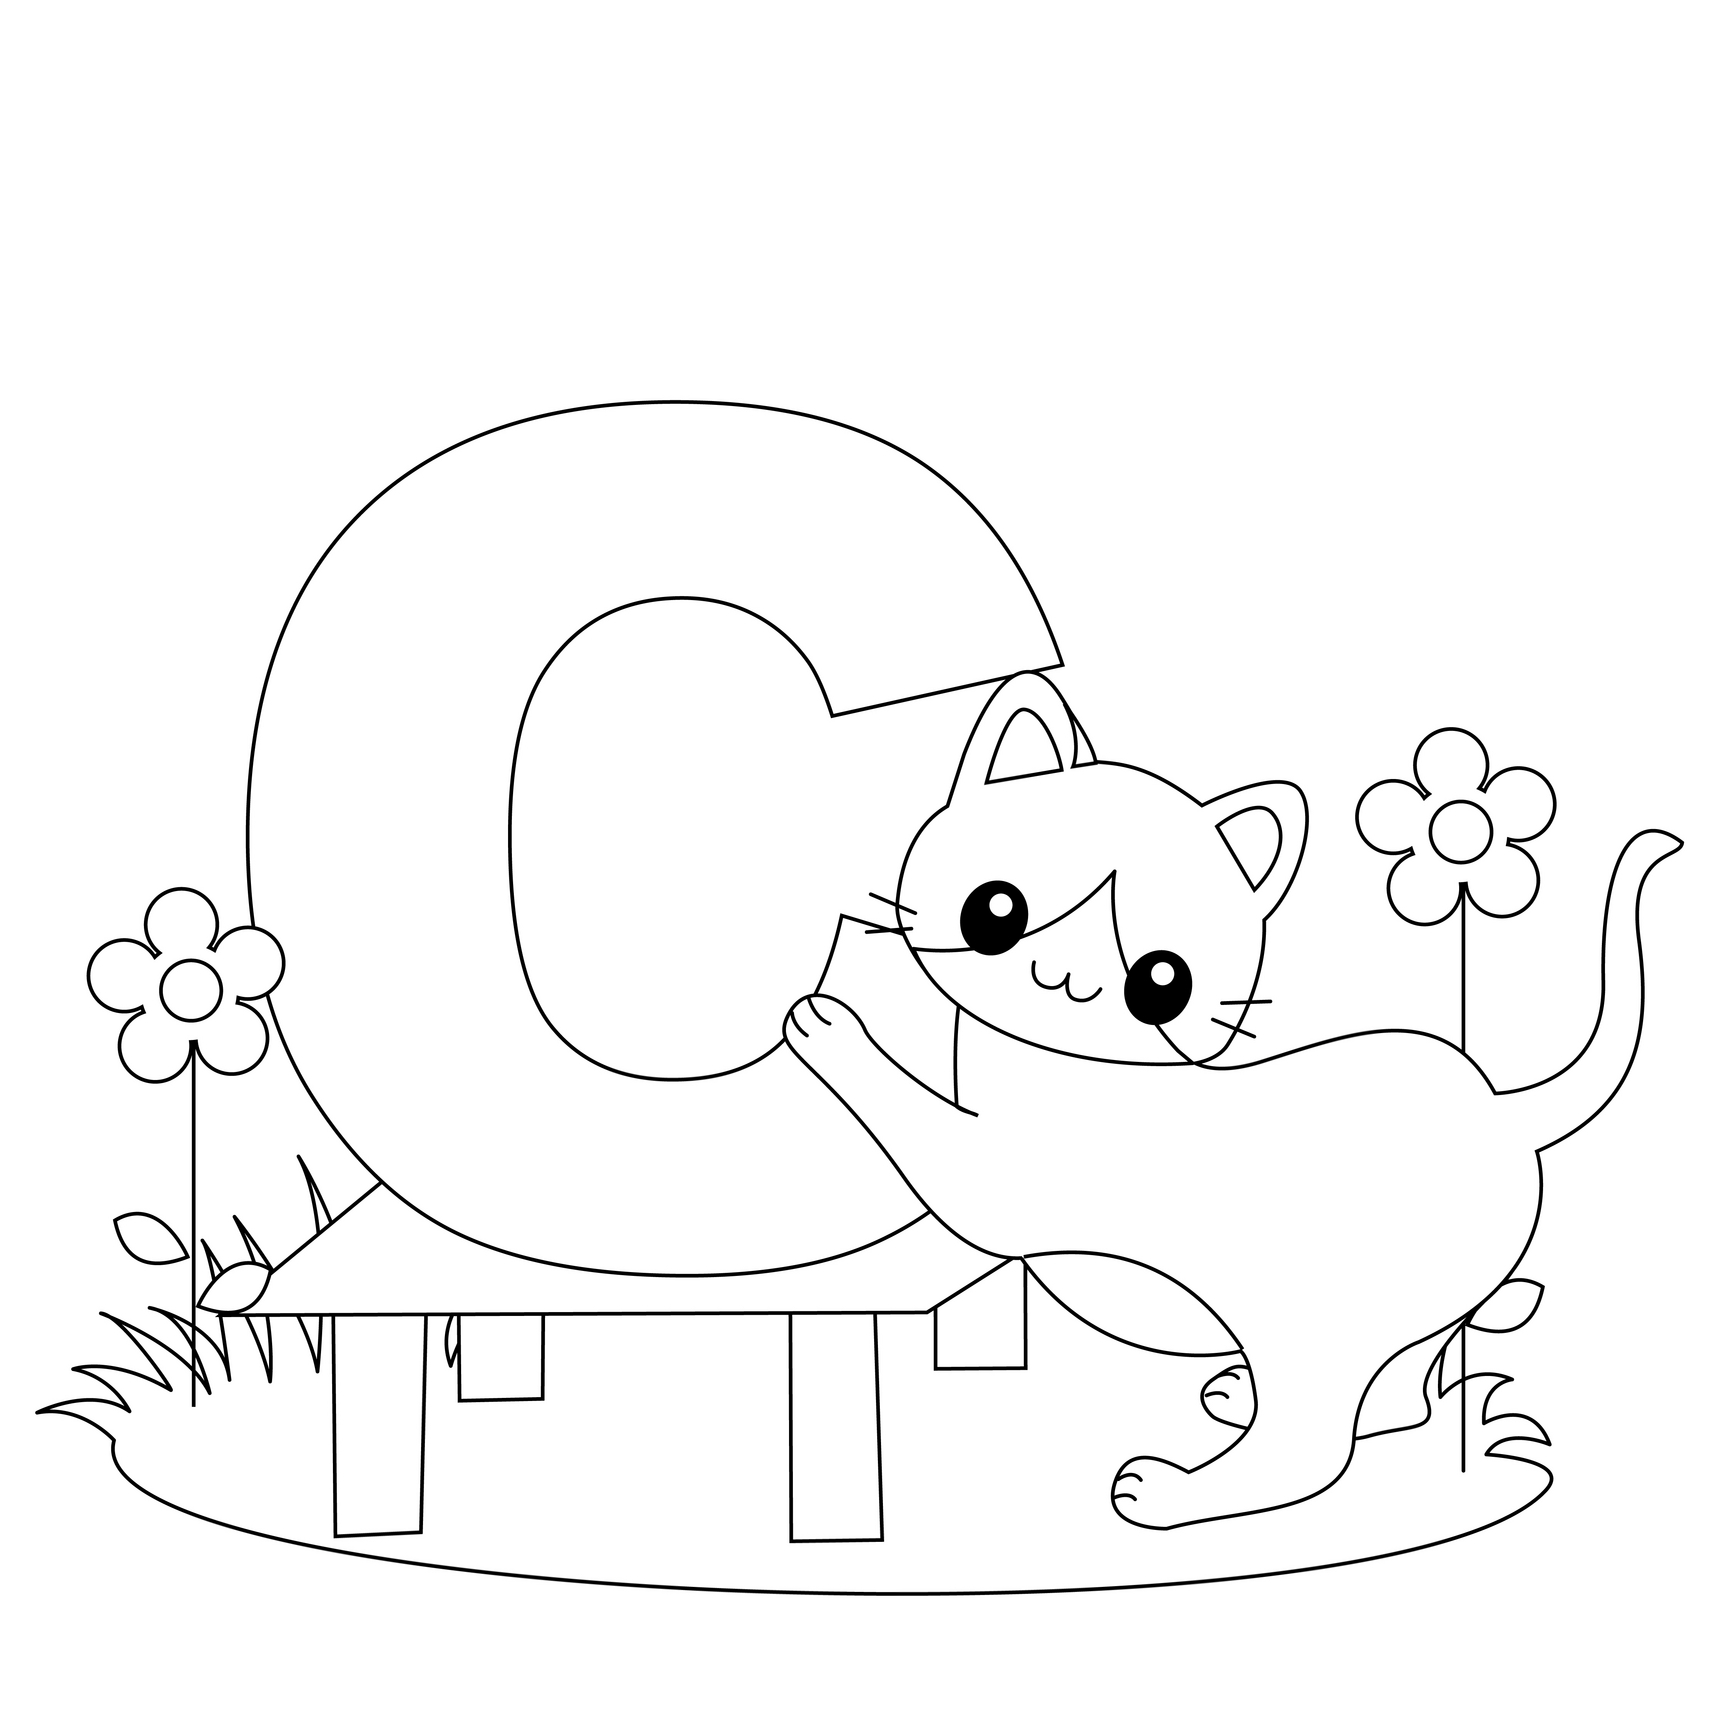 1732x1732 Animal Alphabet Coloring Pages With Animal Alphabet Coloring